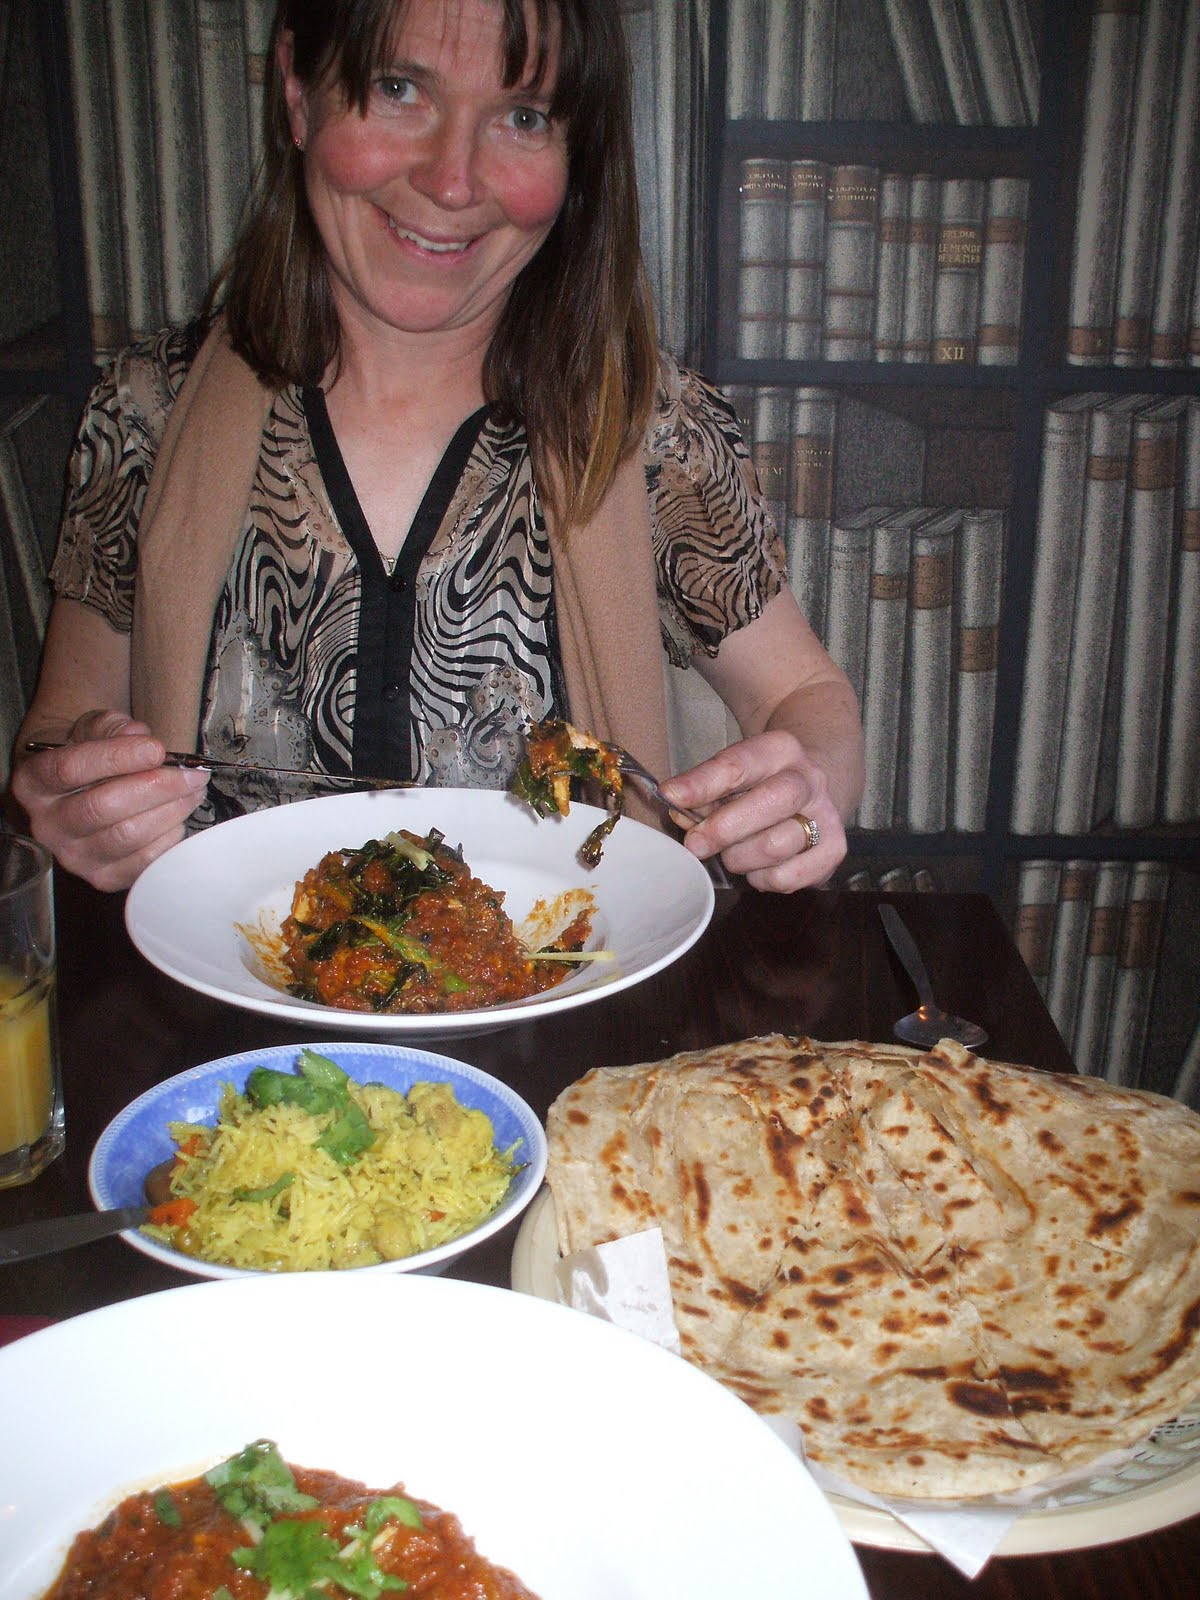 Glasgow The Wee Curry Shop Buccleuch St Curry Heute